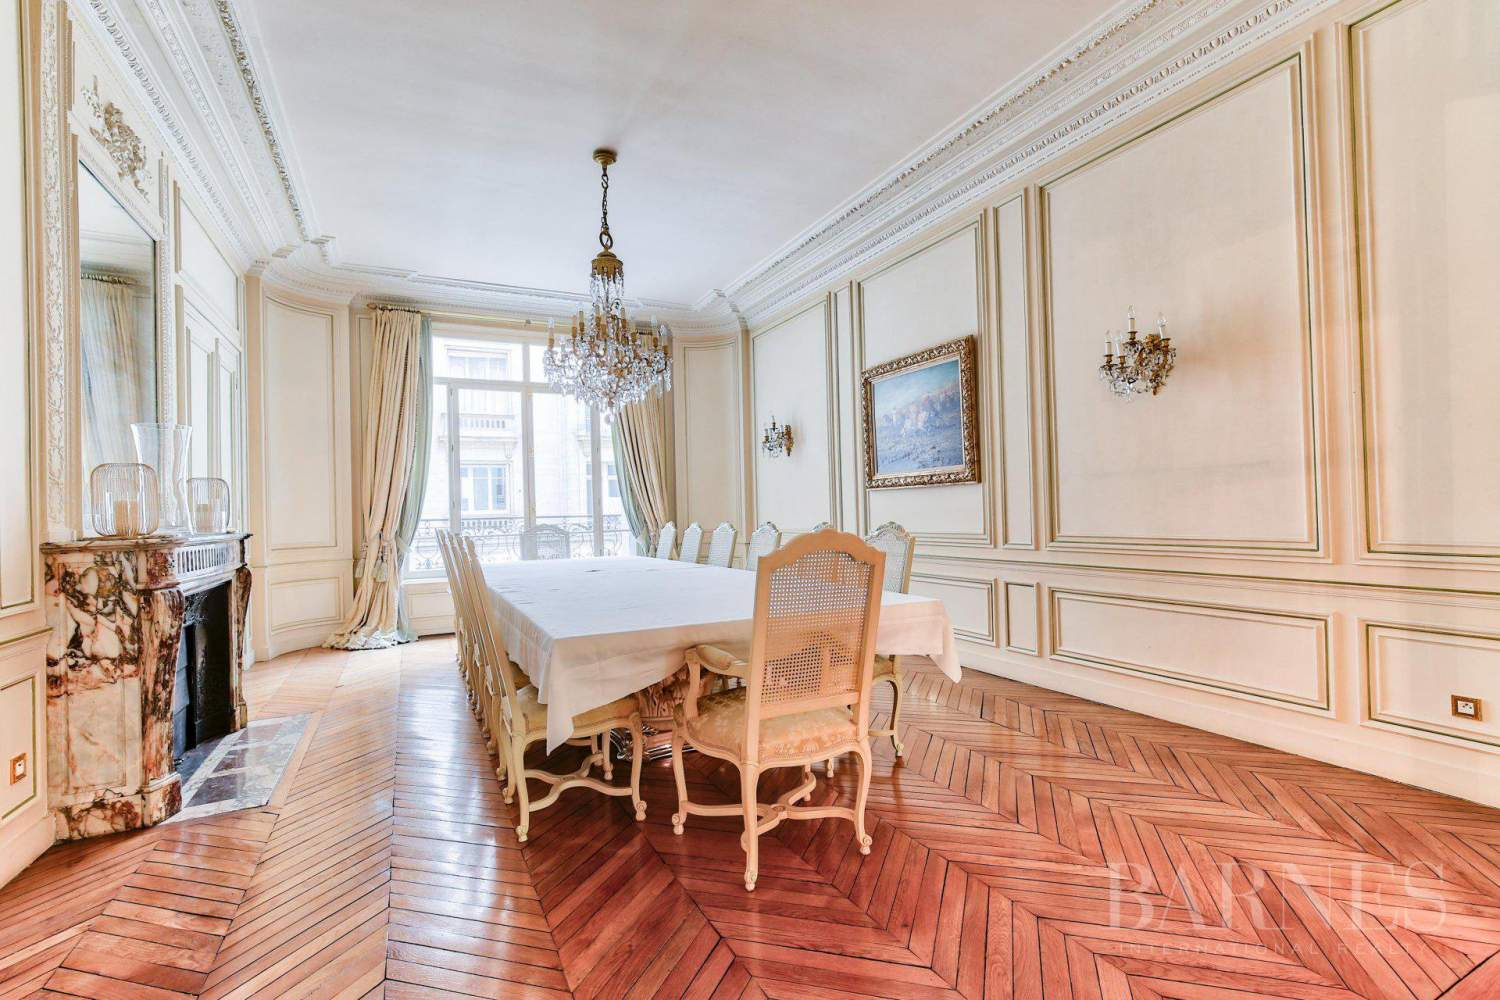 PARIS 16 - VICTOR HUGO / RAYMOND POINCARE - HIGH-END APARTMENT - FURNISHED OR UNFURNISHED - 1ST FLOOR - 390M² (4,198 SQ FT) - 4 BEDROOMS picture 7